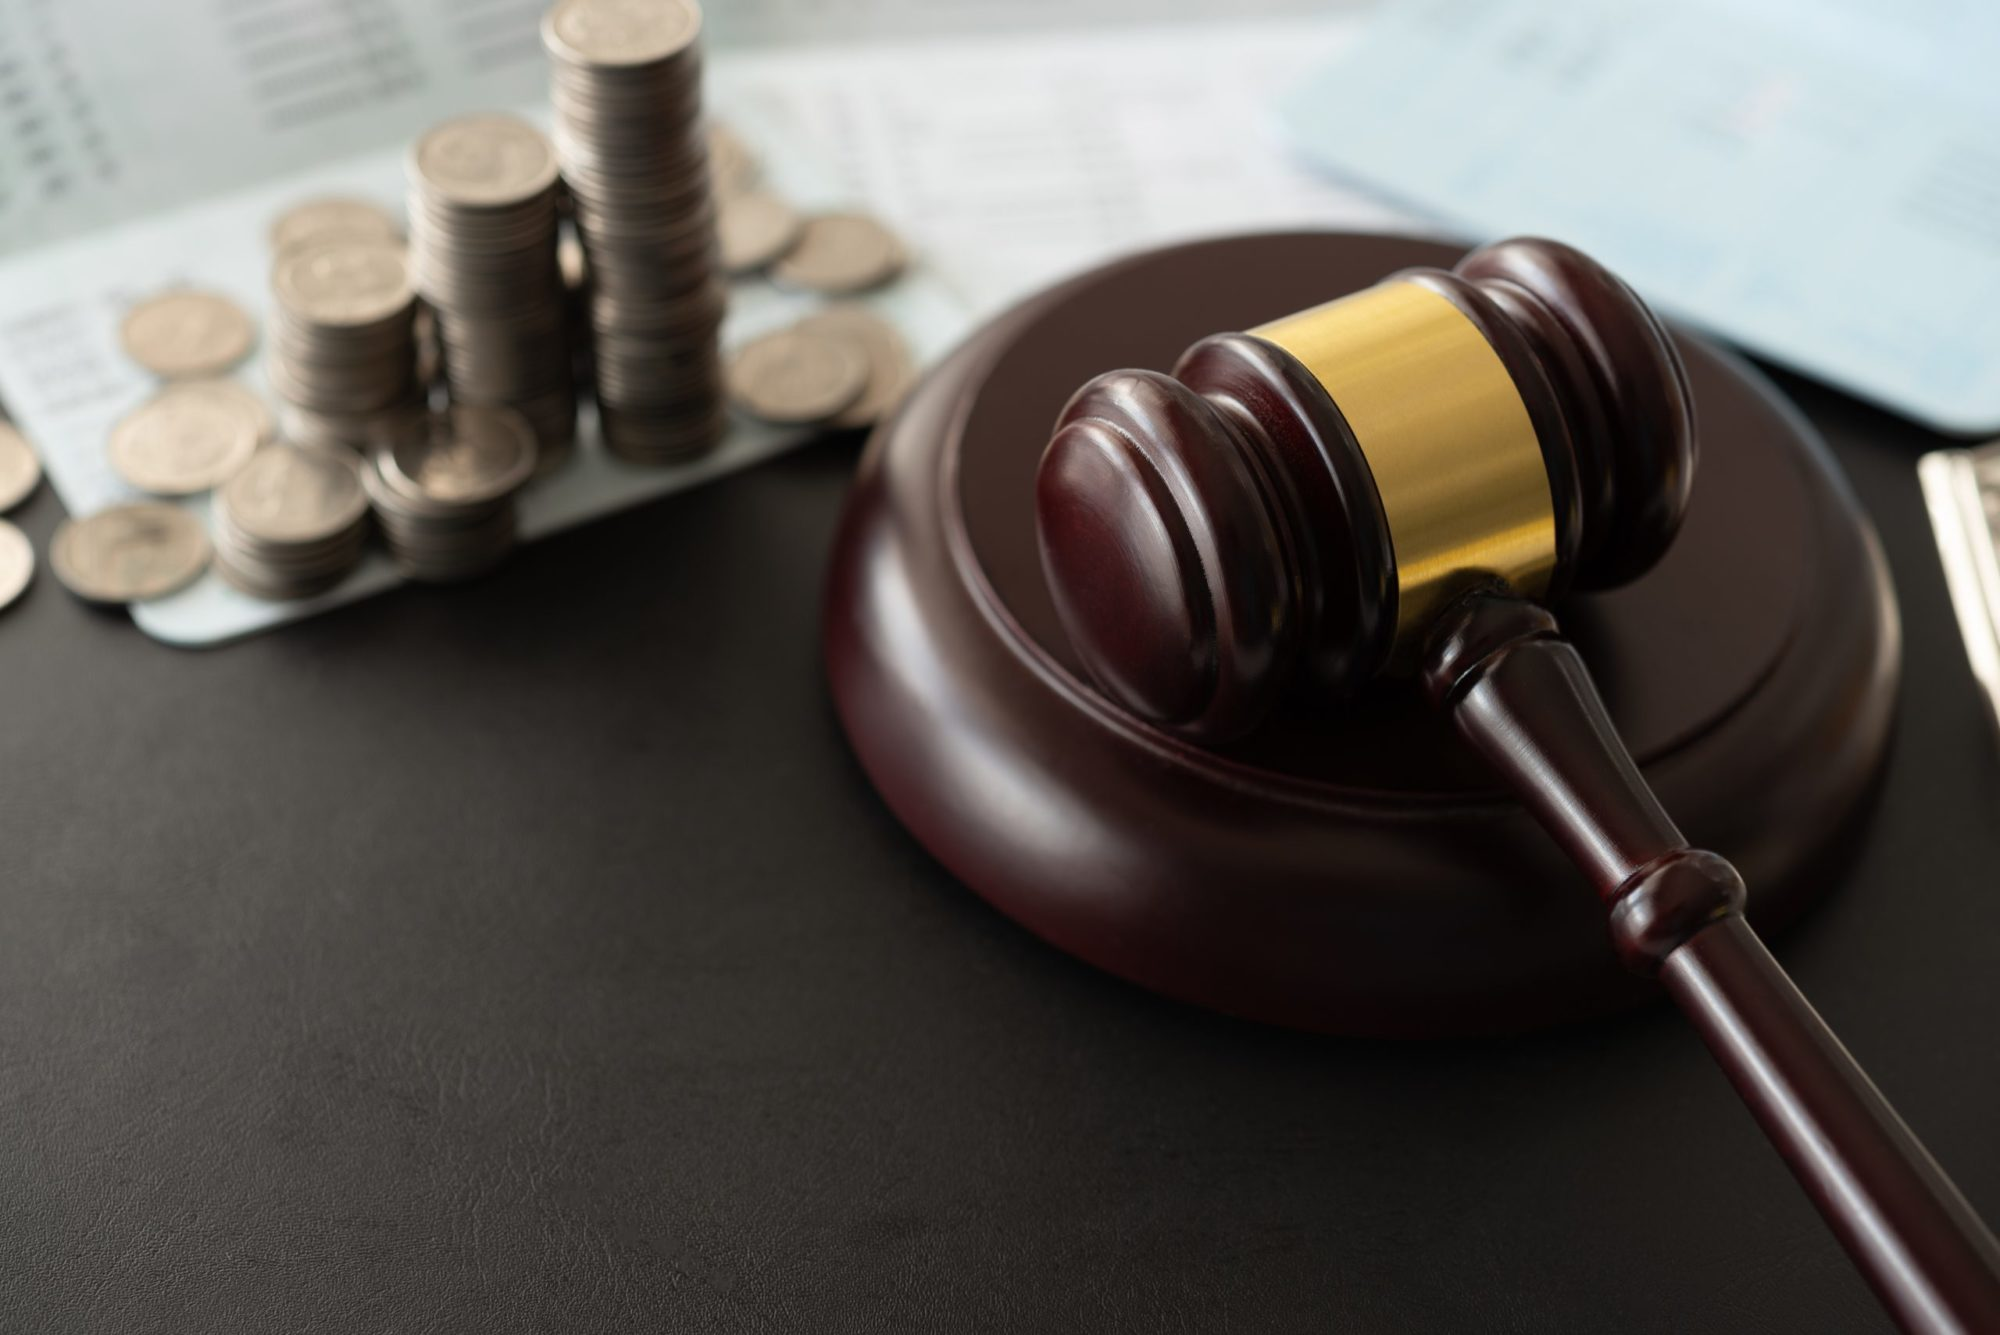 gavel next to a pile of coins